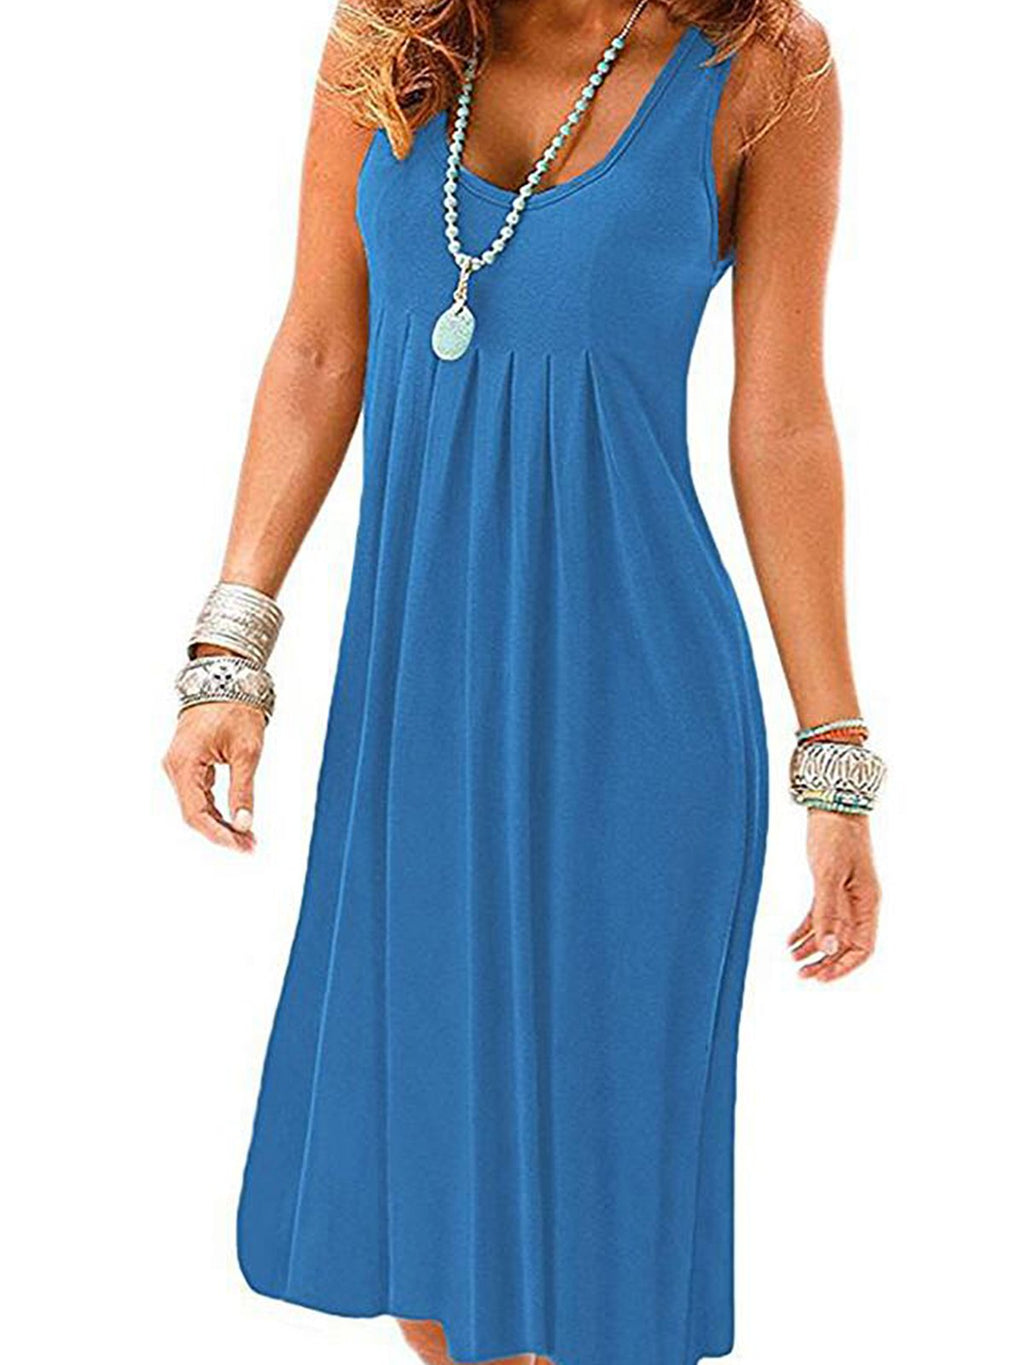 Round Neck Women Summer Dresses Shift Beach Cotton-Blend Dress